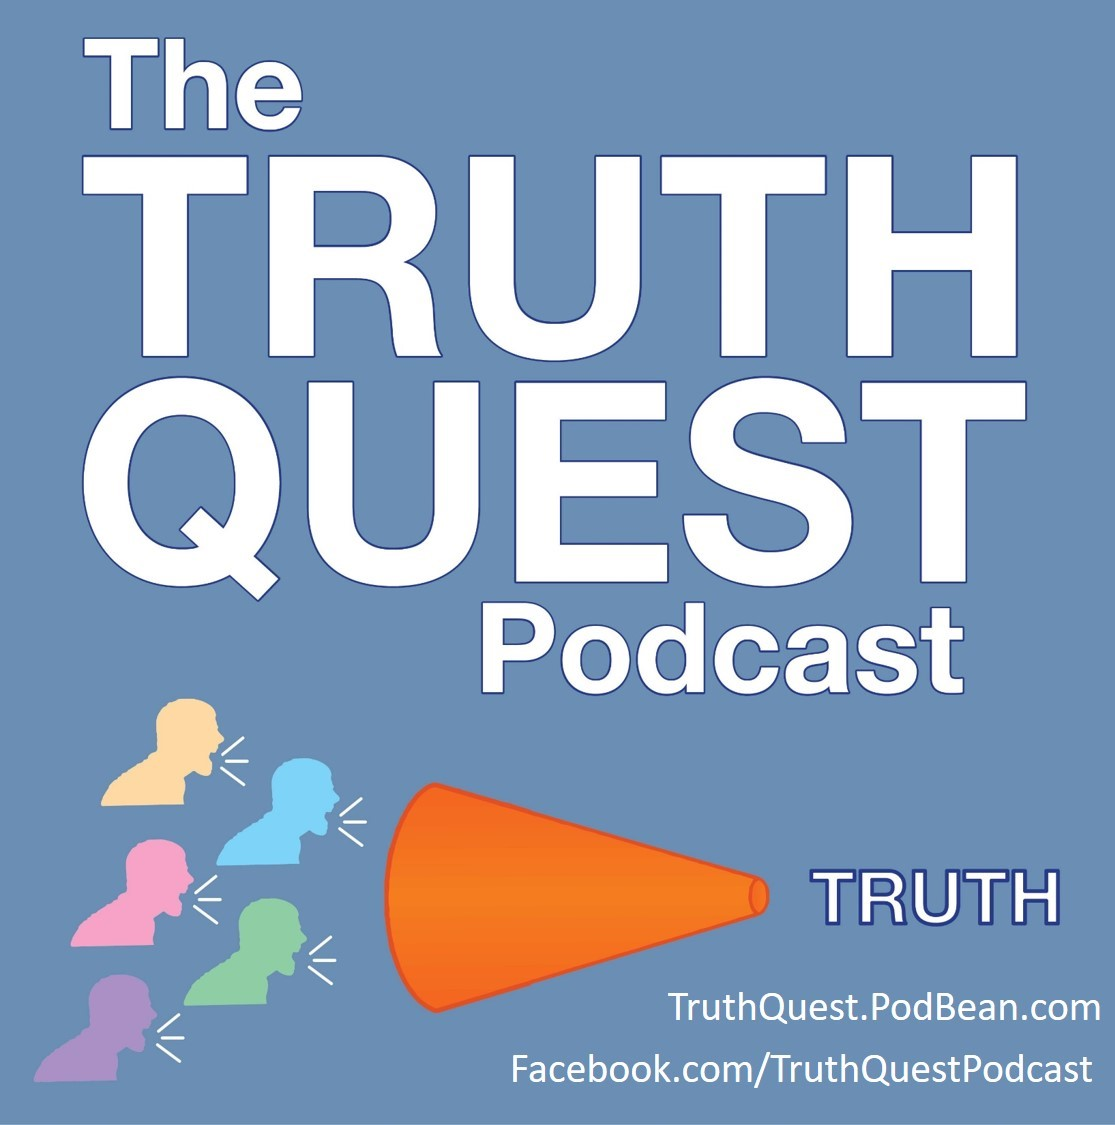 truthquest